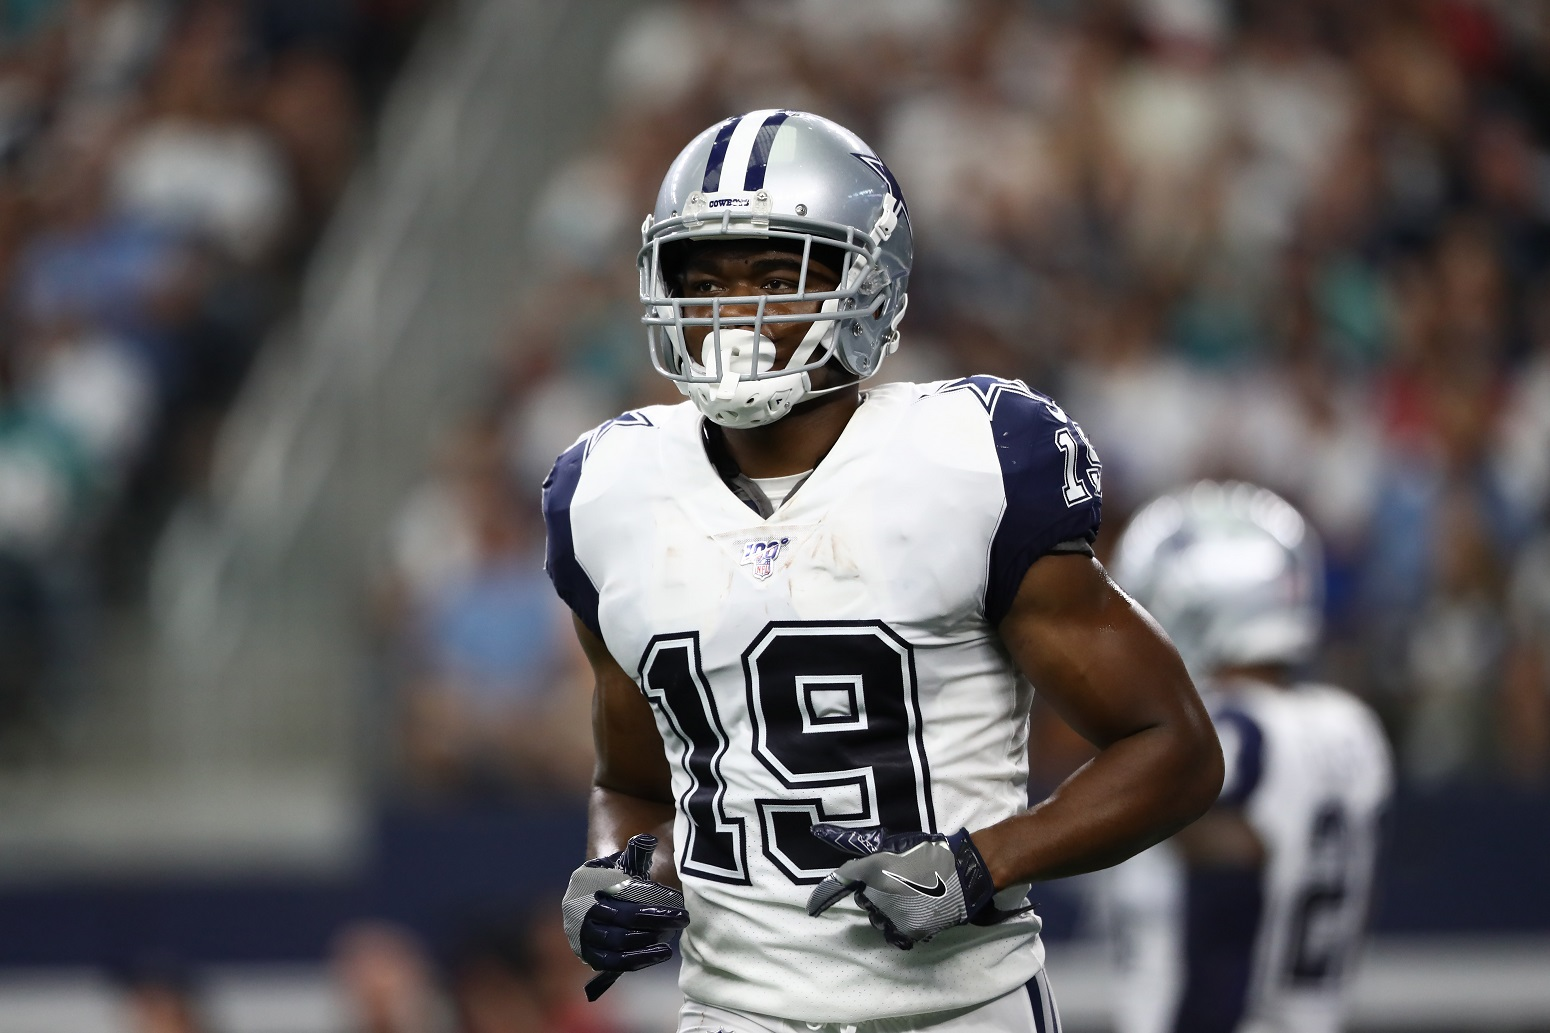 Cowboys wide receiver Amari Cooper